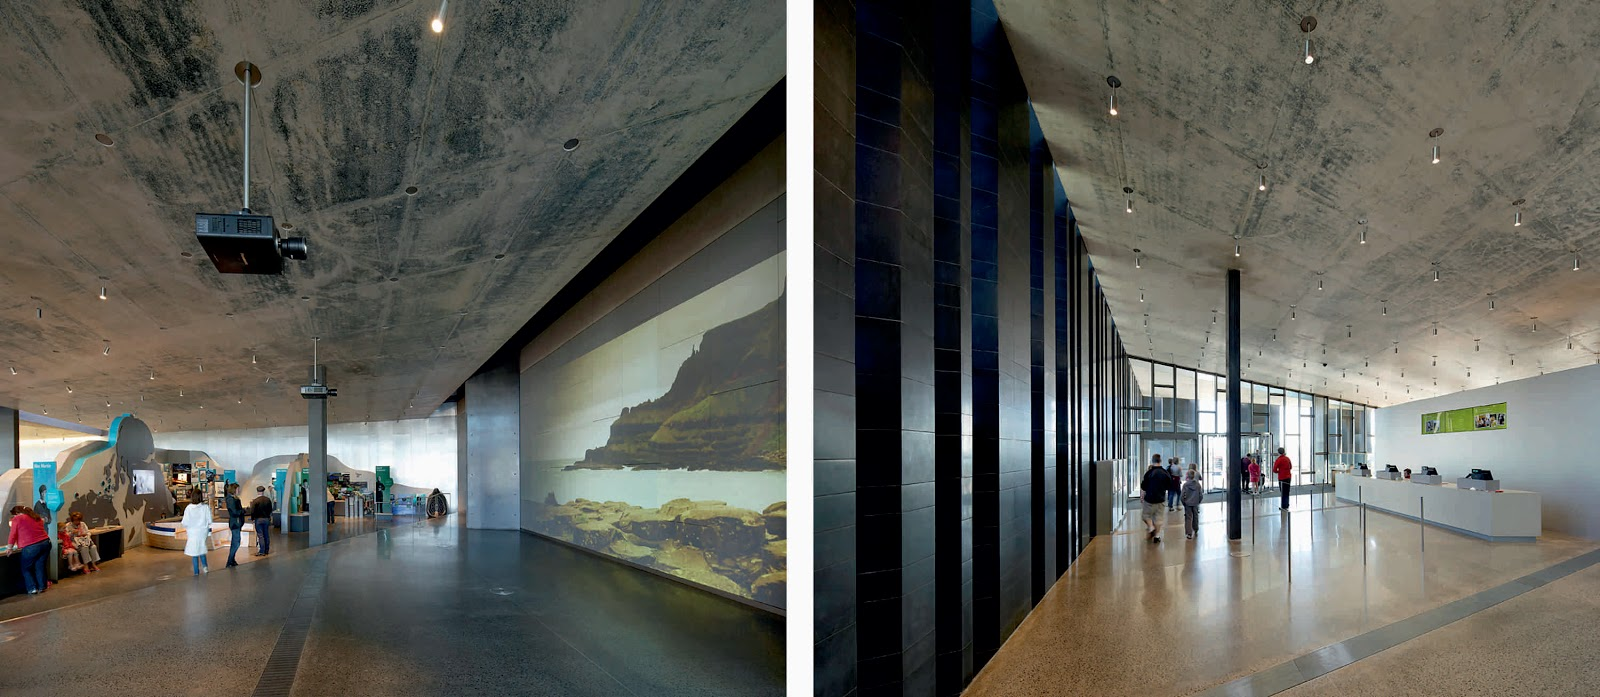 Giant S Causeway Visitor Centre By Heneghan Peng